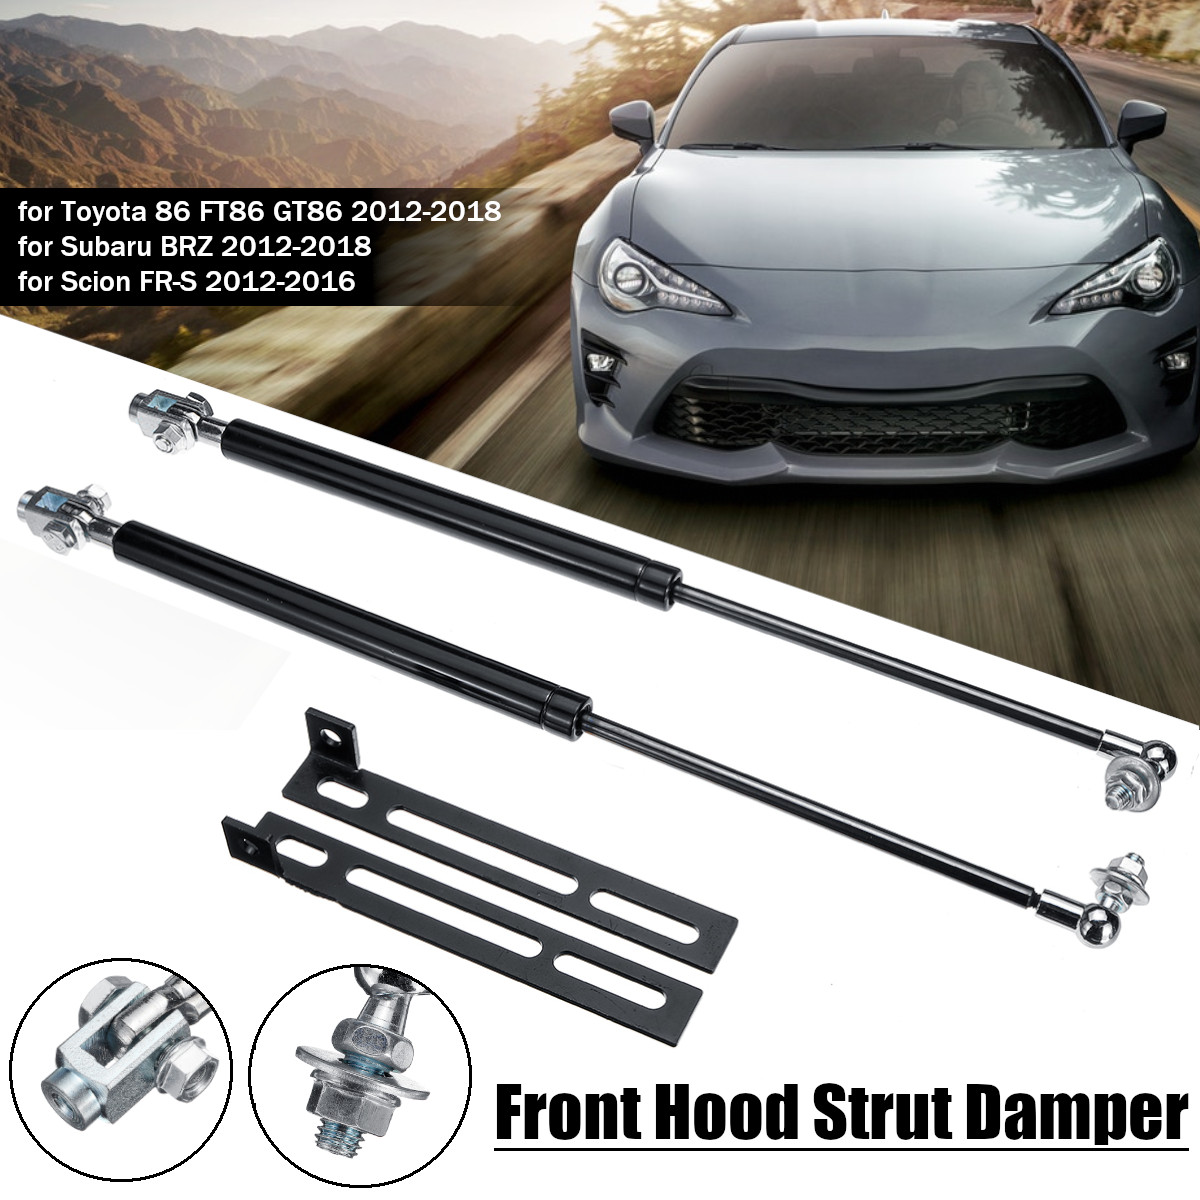 1Pair Car Front Engine Hood Lift Supports Props Rod Arm Gas Springs Shocks Strut For Toyota 86 FT86 GT86 Subaru BRZ Scion FR-S